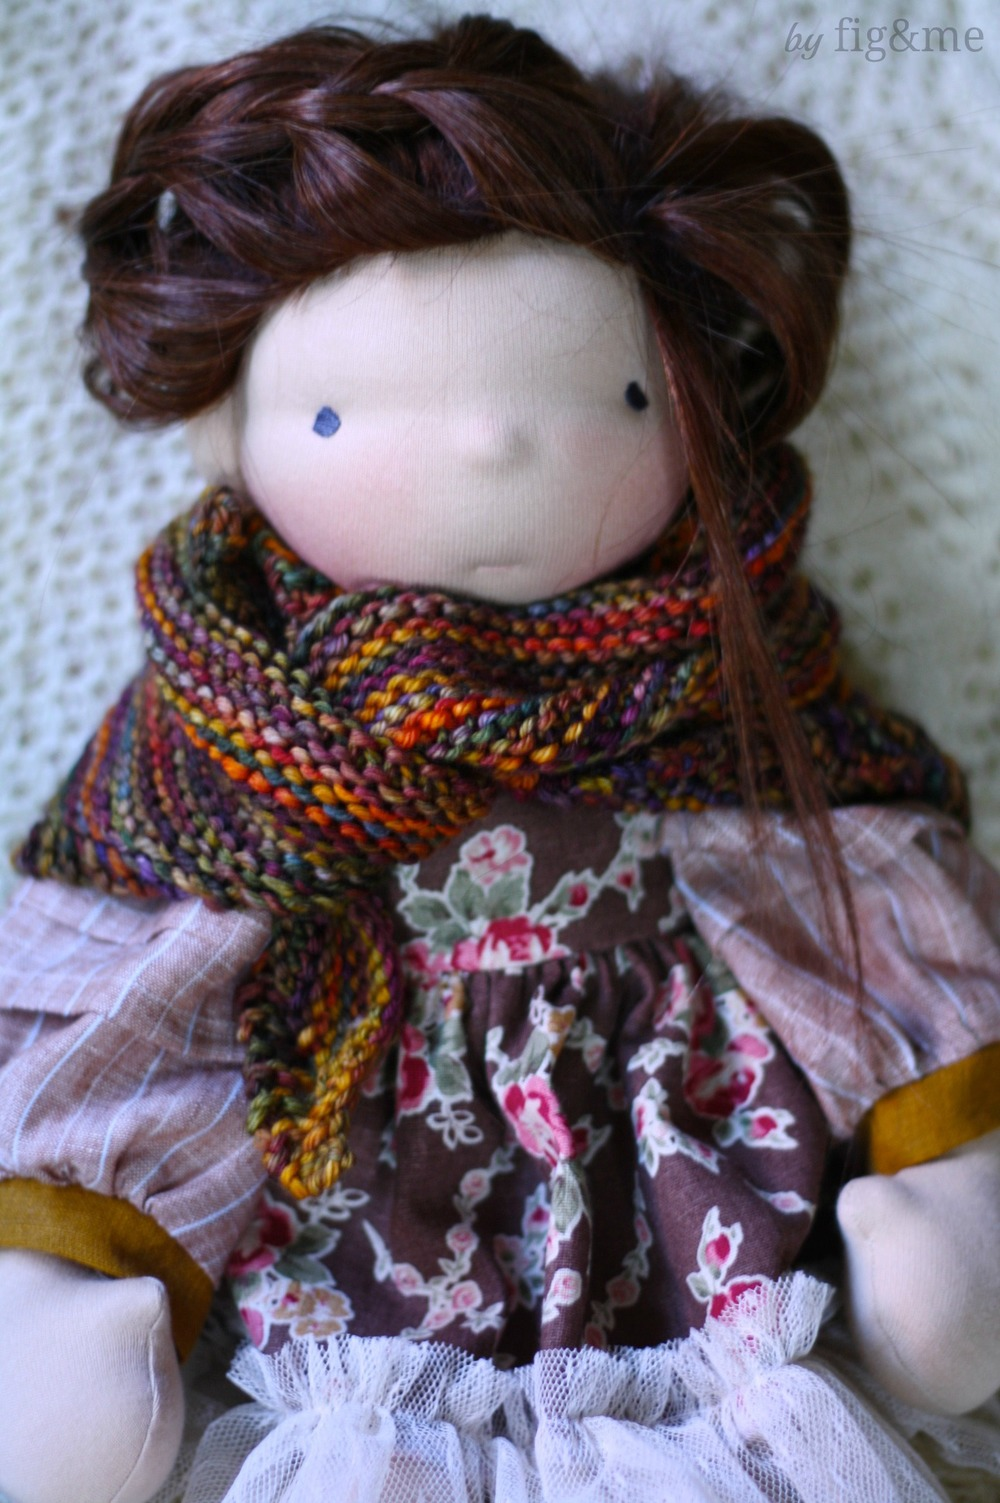 Tina, a handmade natural doll by Fig & me.